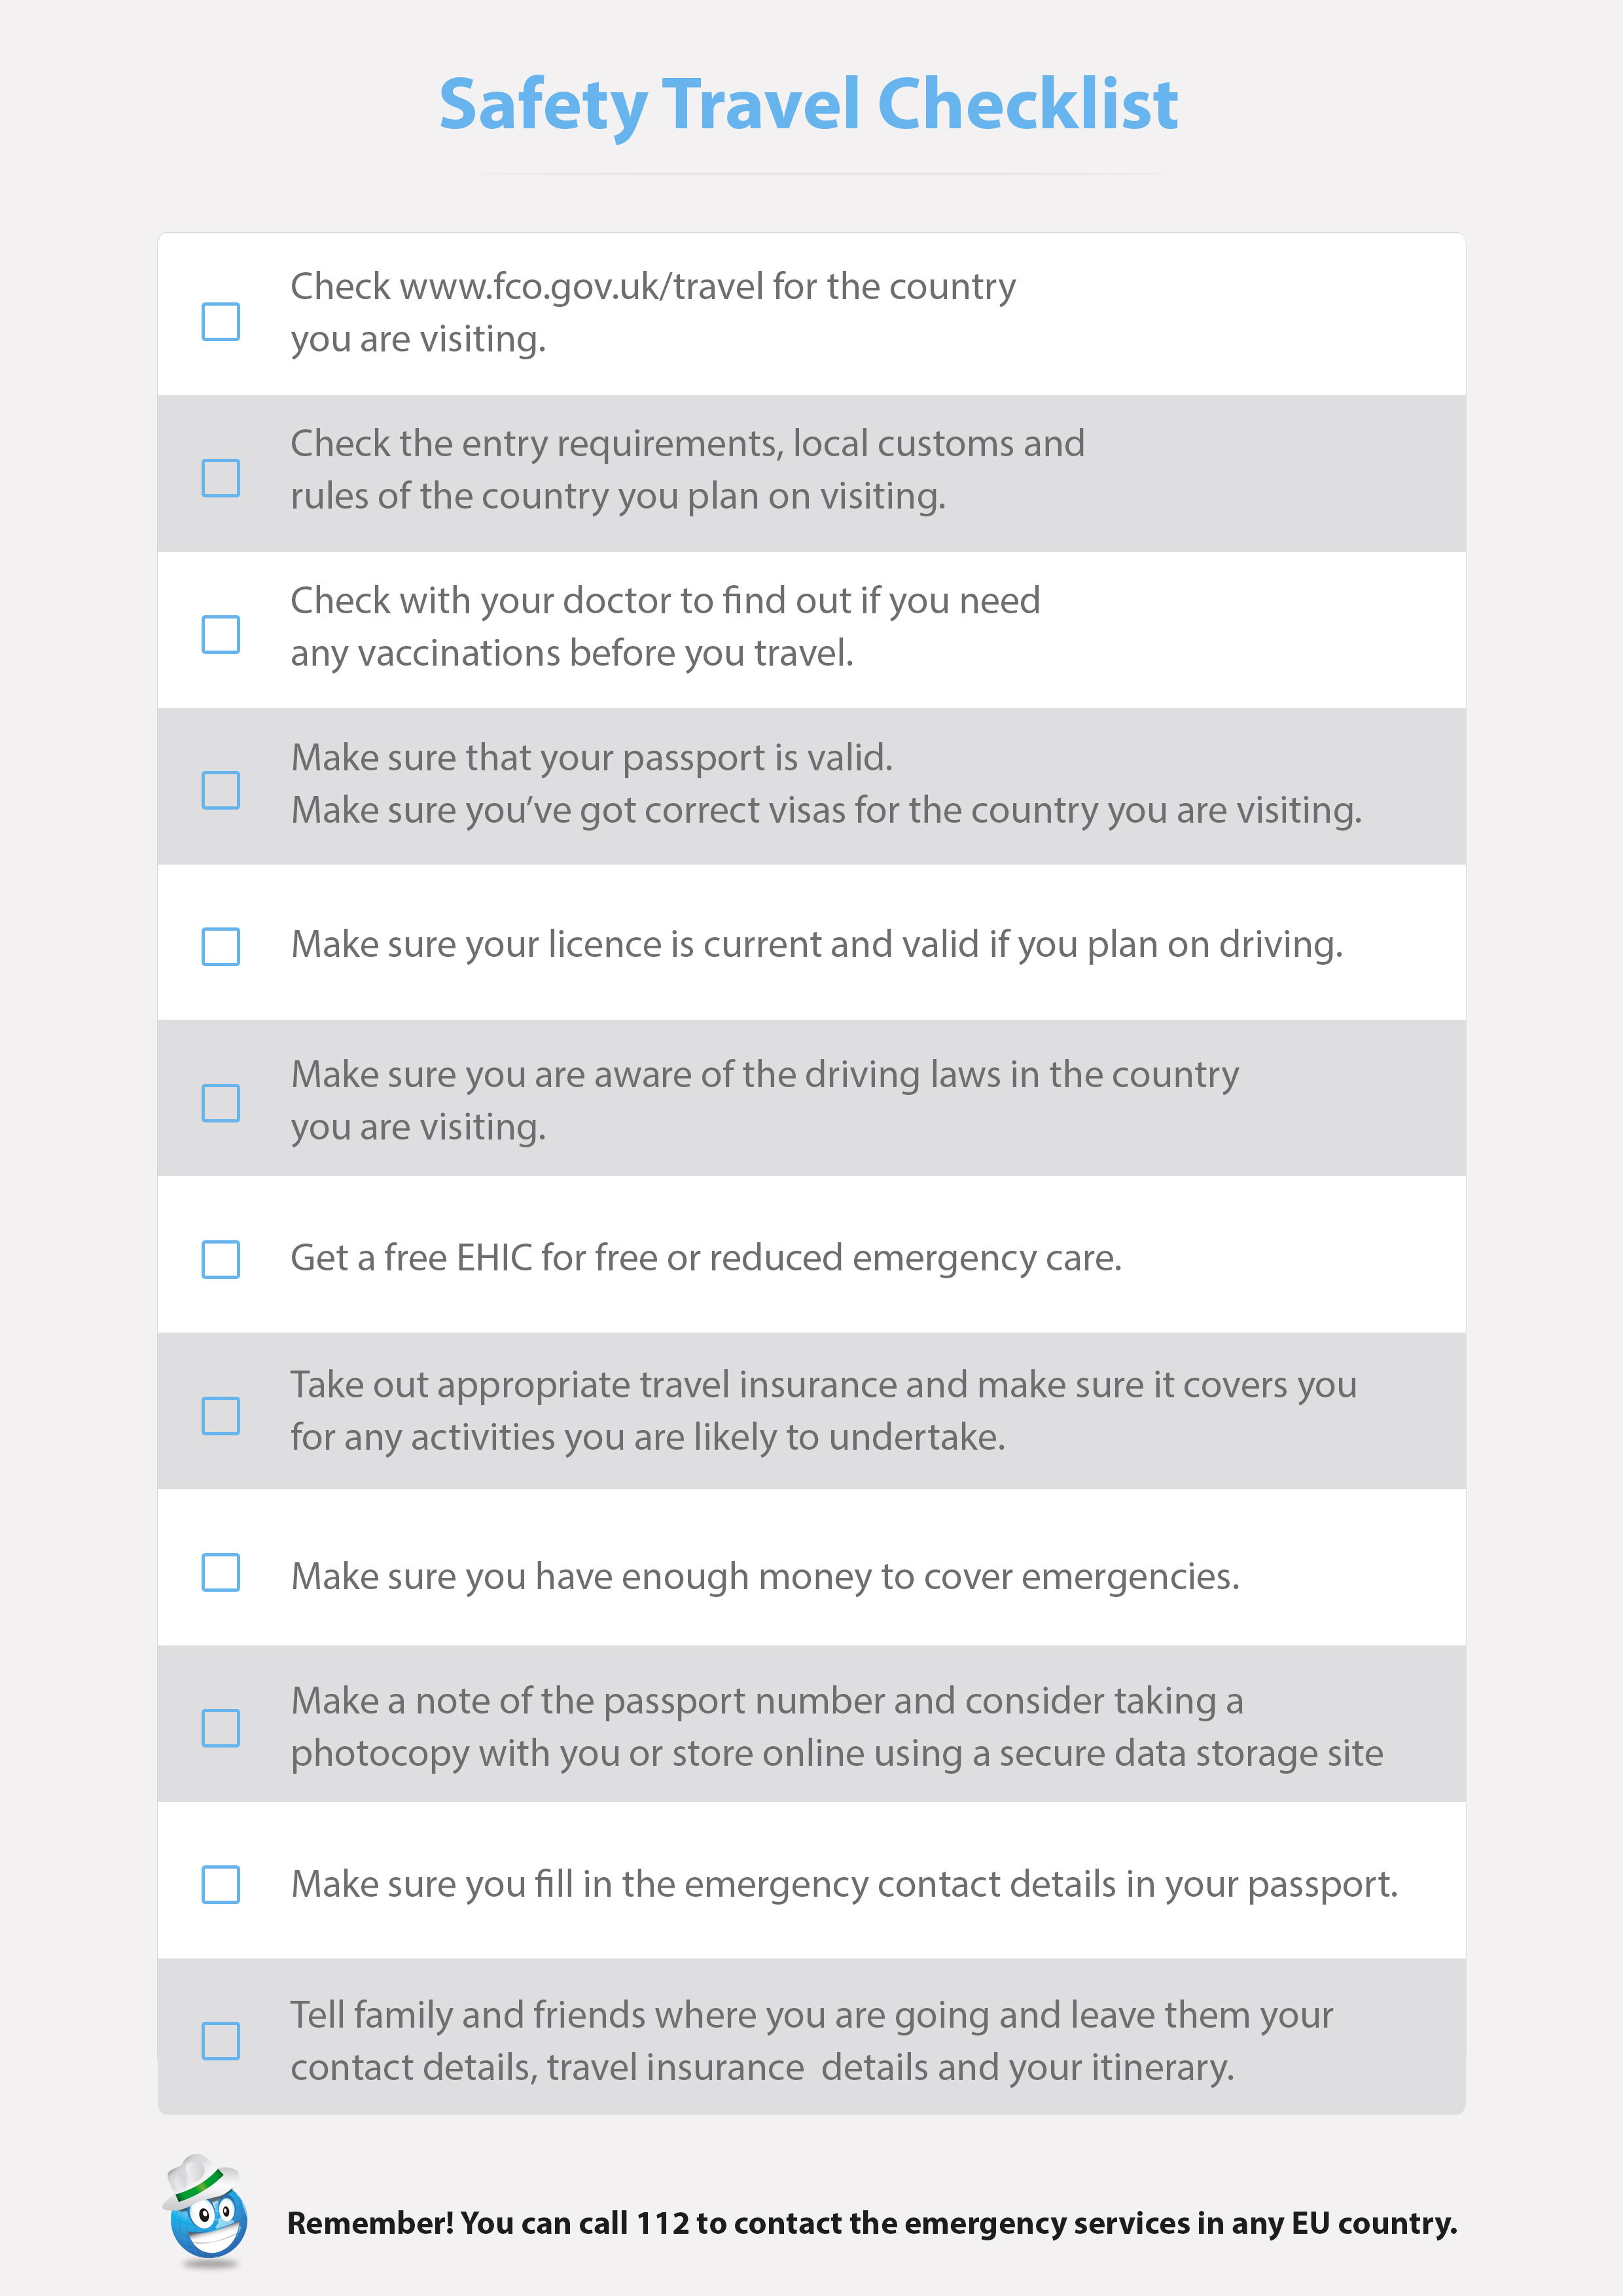 safety travel checklist